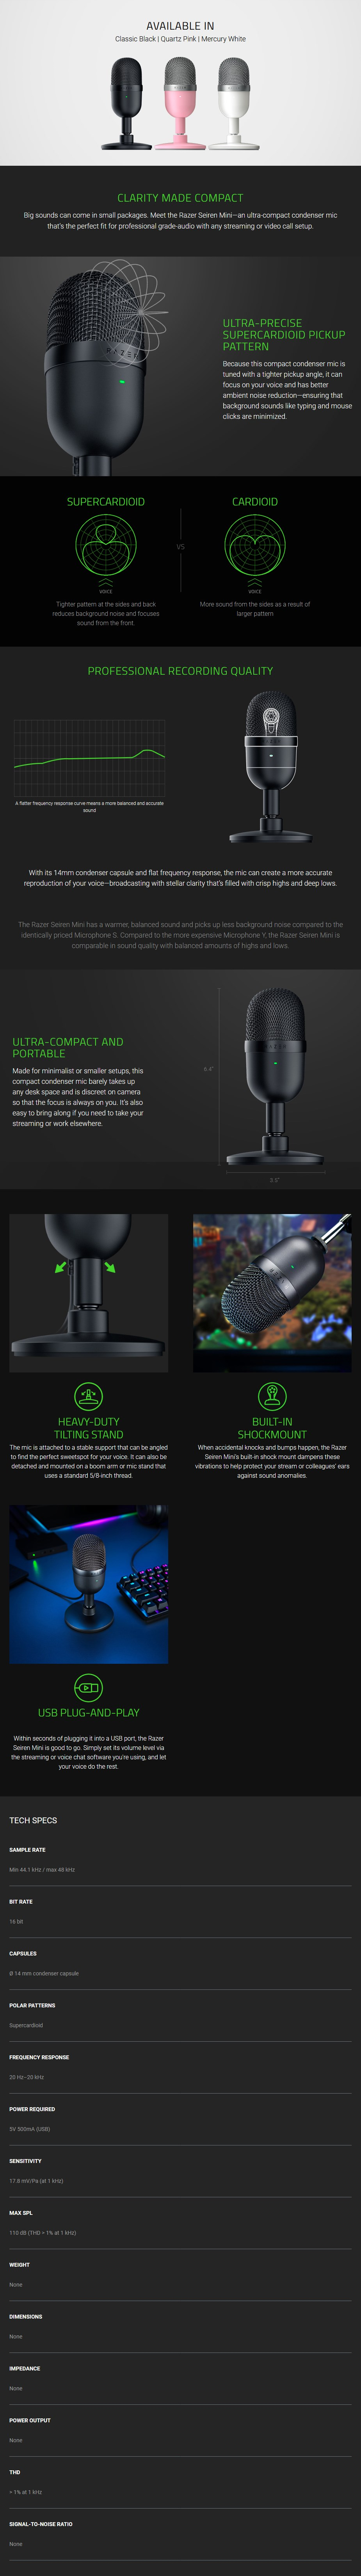 razer_seiren_mini_ultracompact_condenser_microphone_ac39608_1.jpg